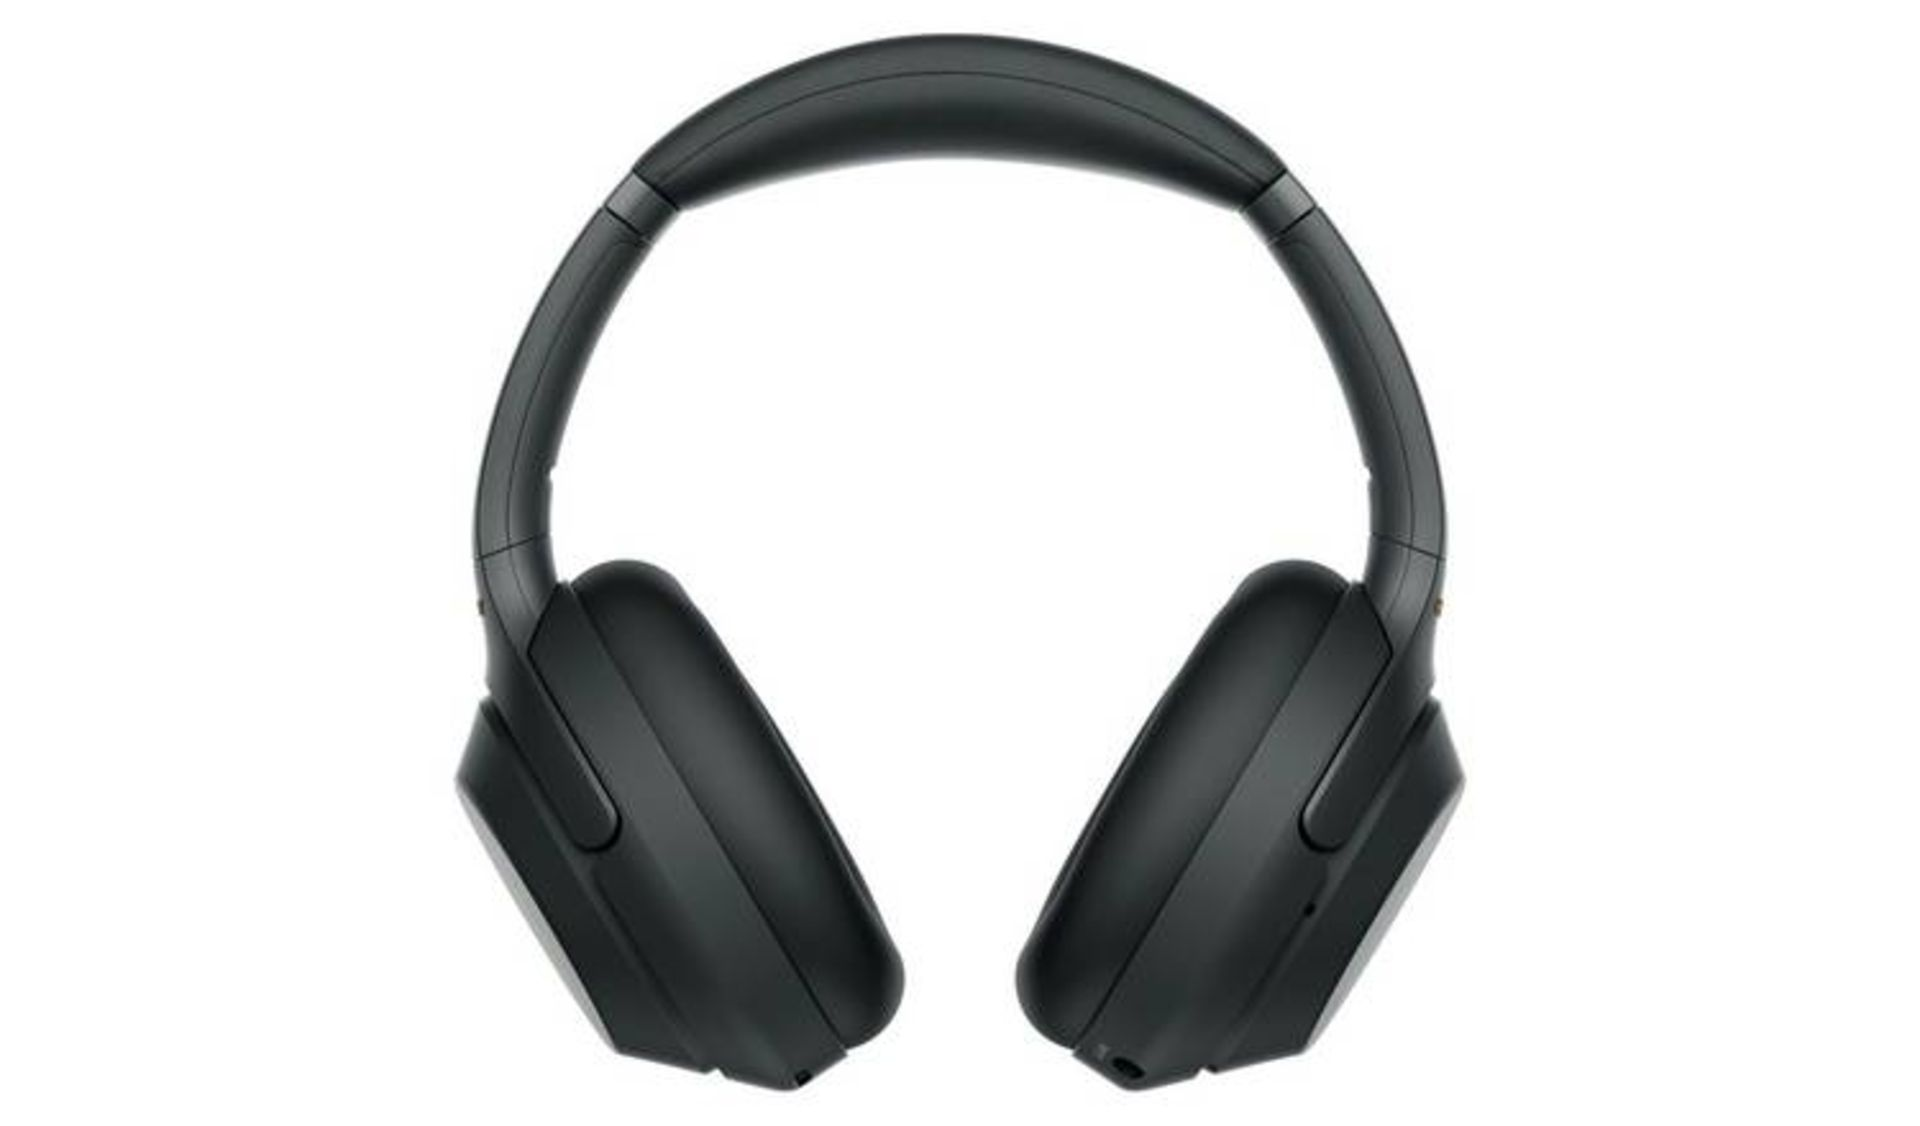 Lot 99 - AS NEW CONDITION SONY WH-1000XM3 ON-EAR WIRELESS HEADPHONES - BLACK *NO VAT*